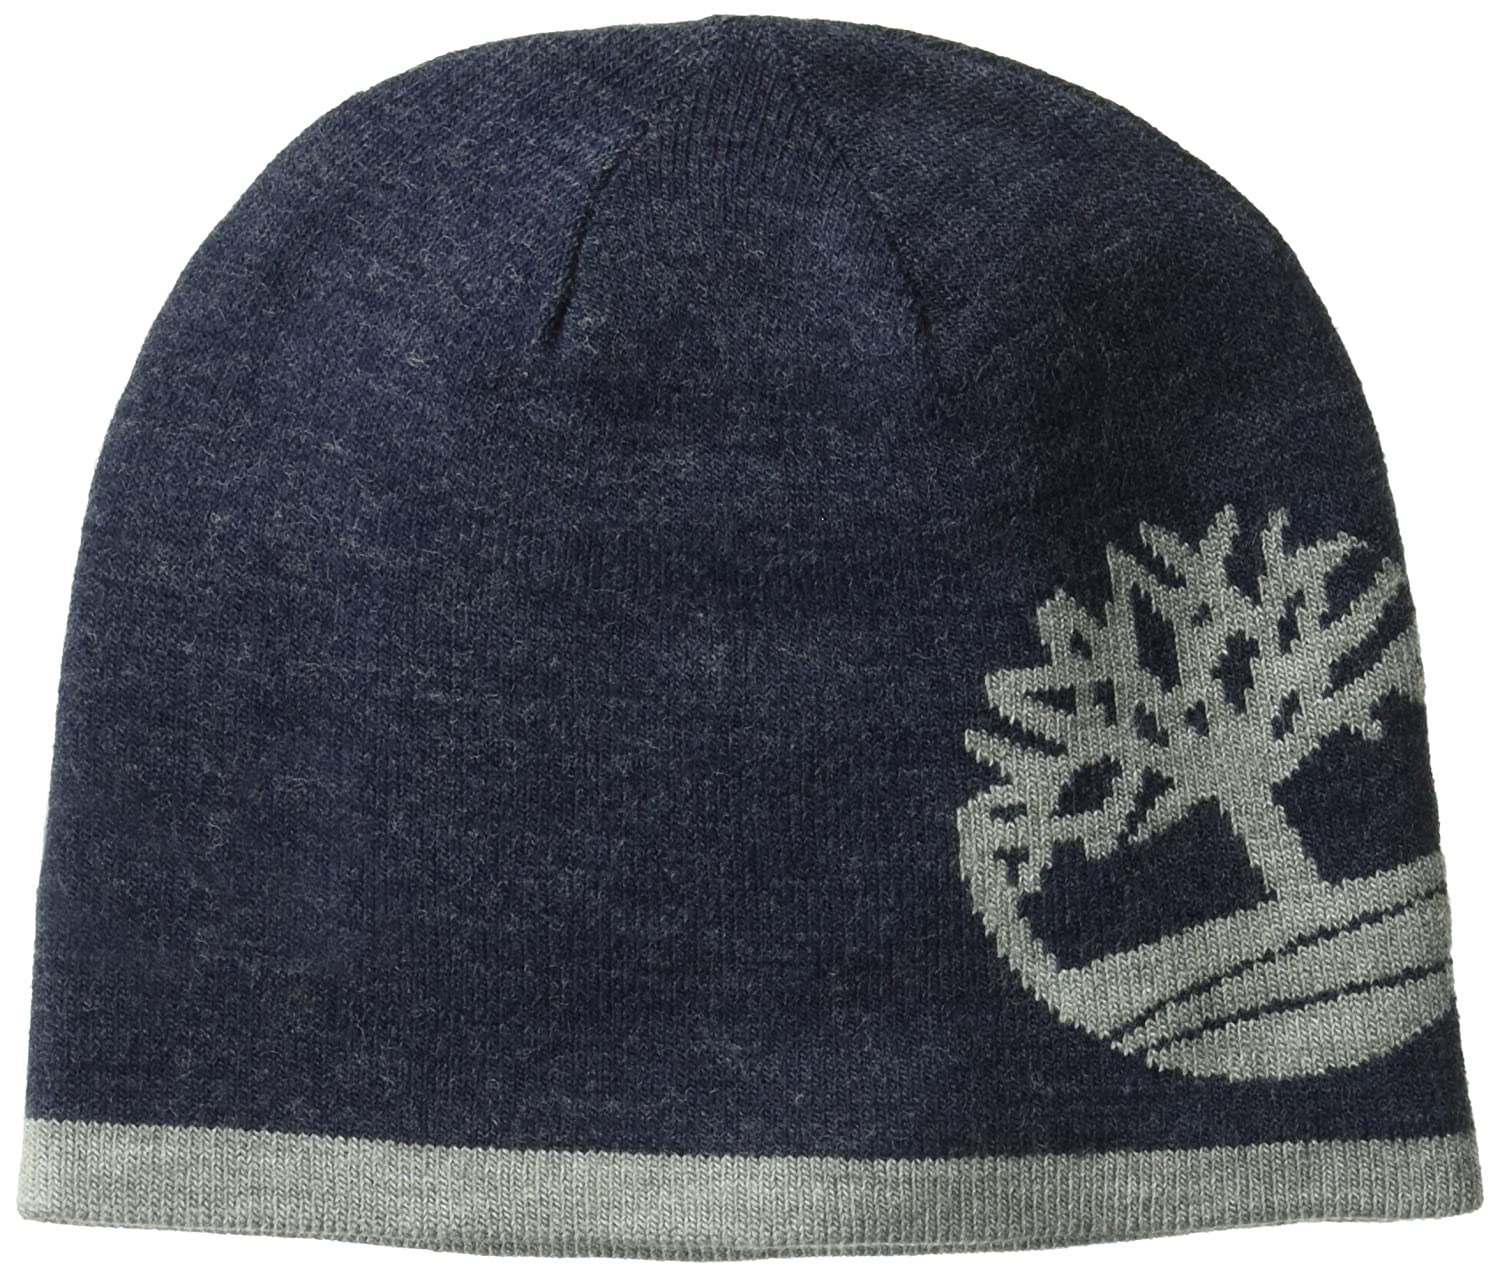 Timberland Mens Standard Reversible Knit in Tree Beanie Black One Size THM340448